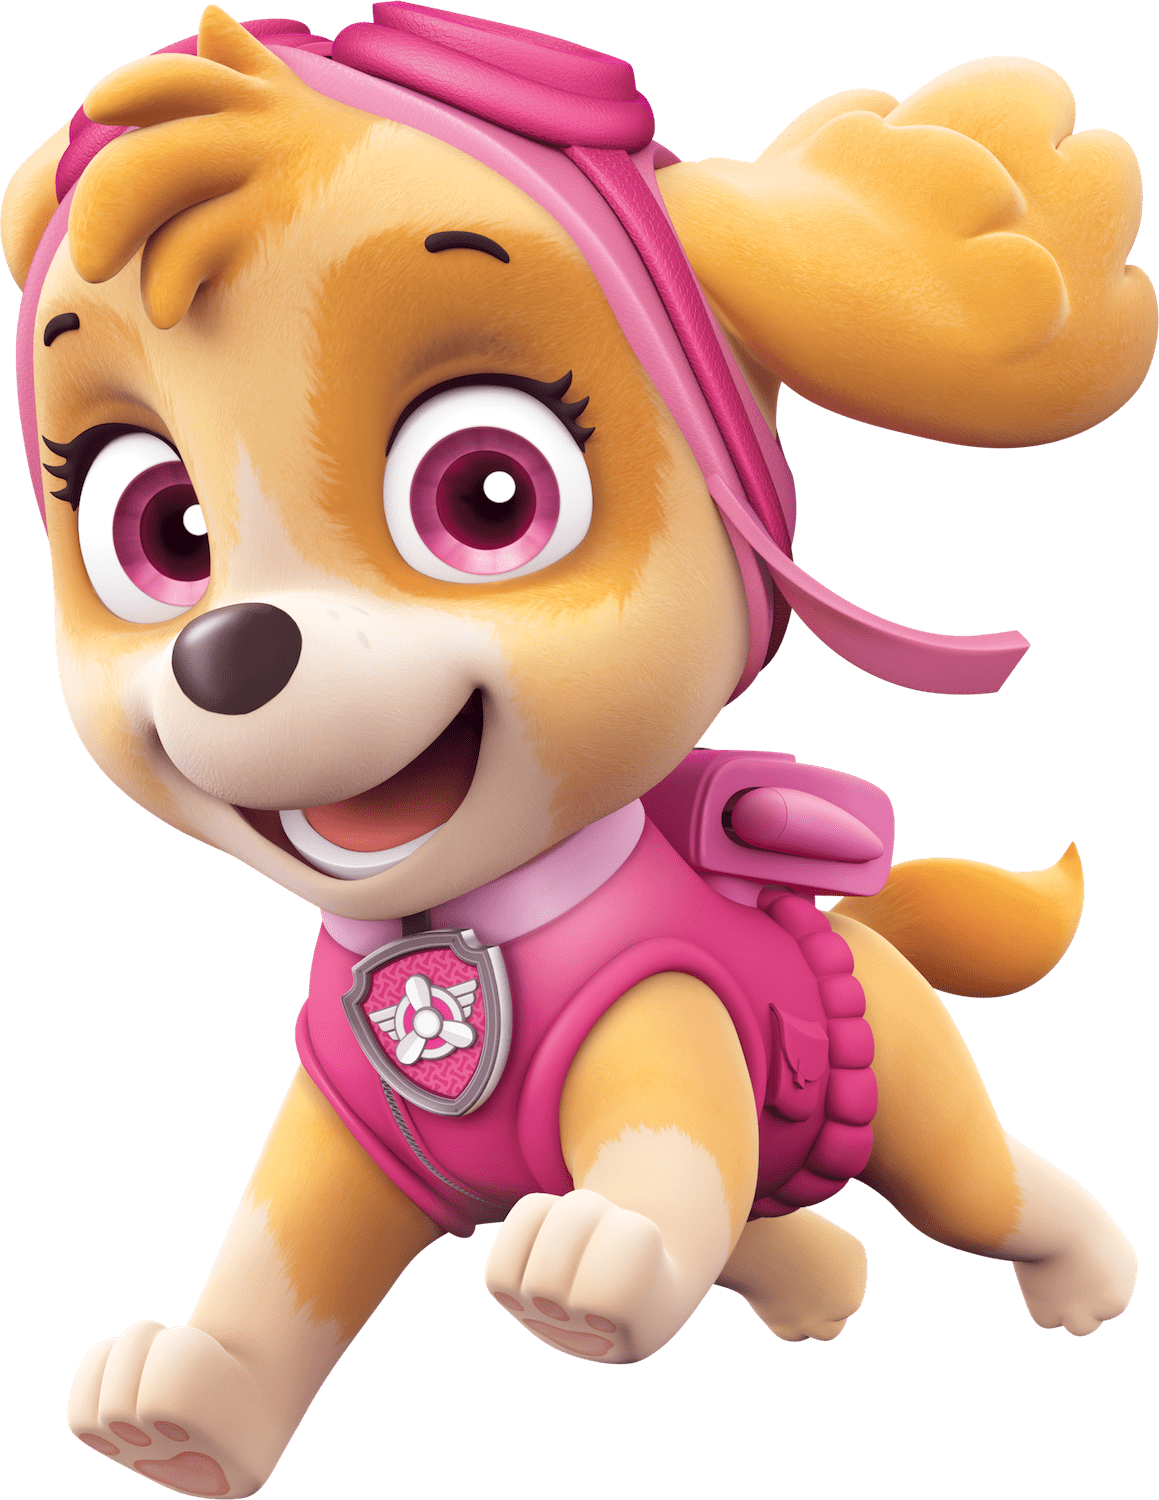 Paw patrol clipart skye vector free download Happy Paw Patrol Photos - 14105 - TransparentPNG vector free download